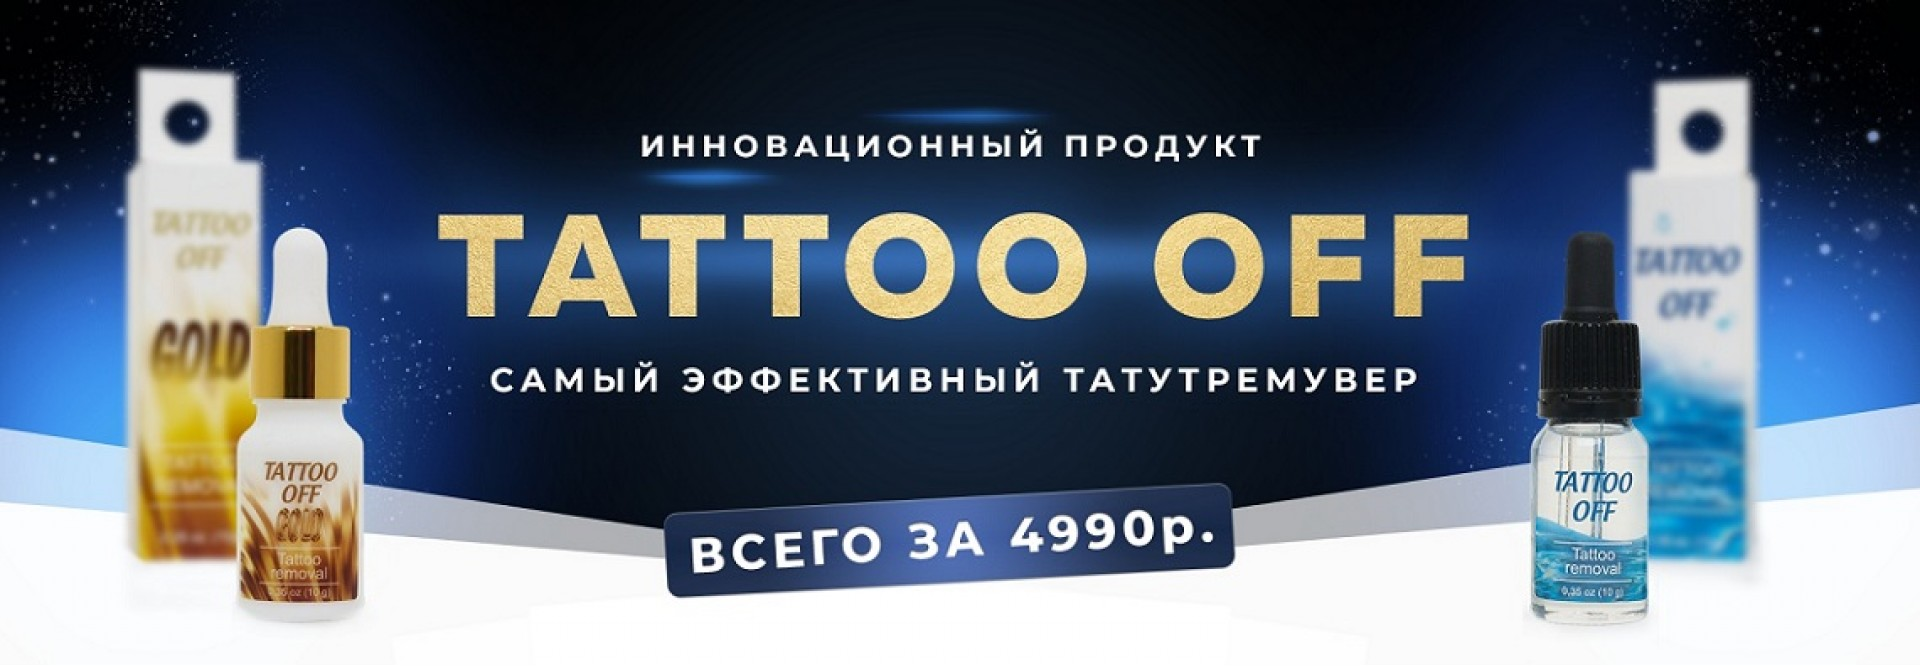 Ремувер для удаления татуажа Tattoo Off